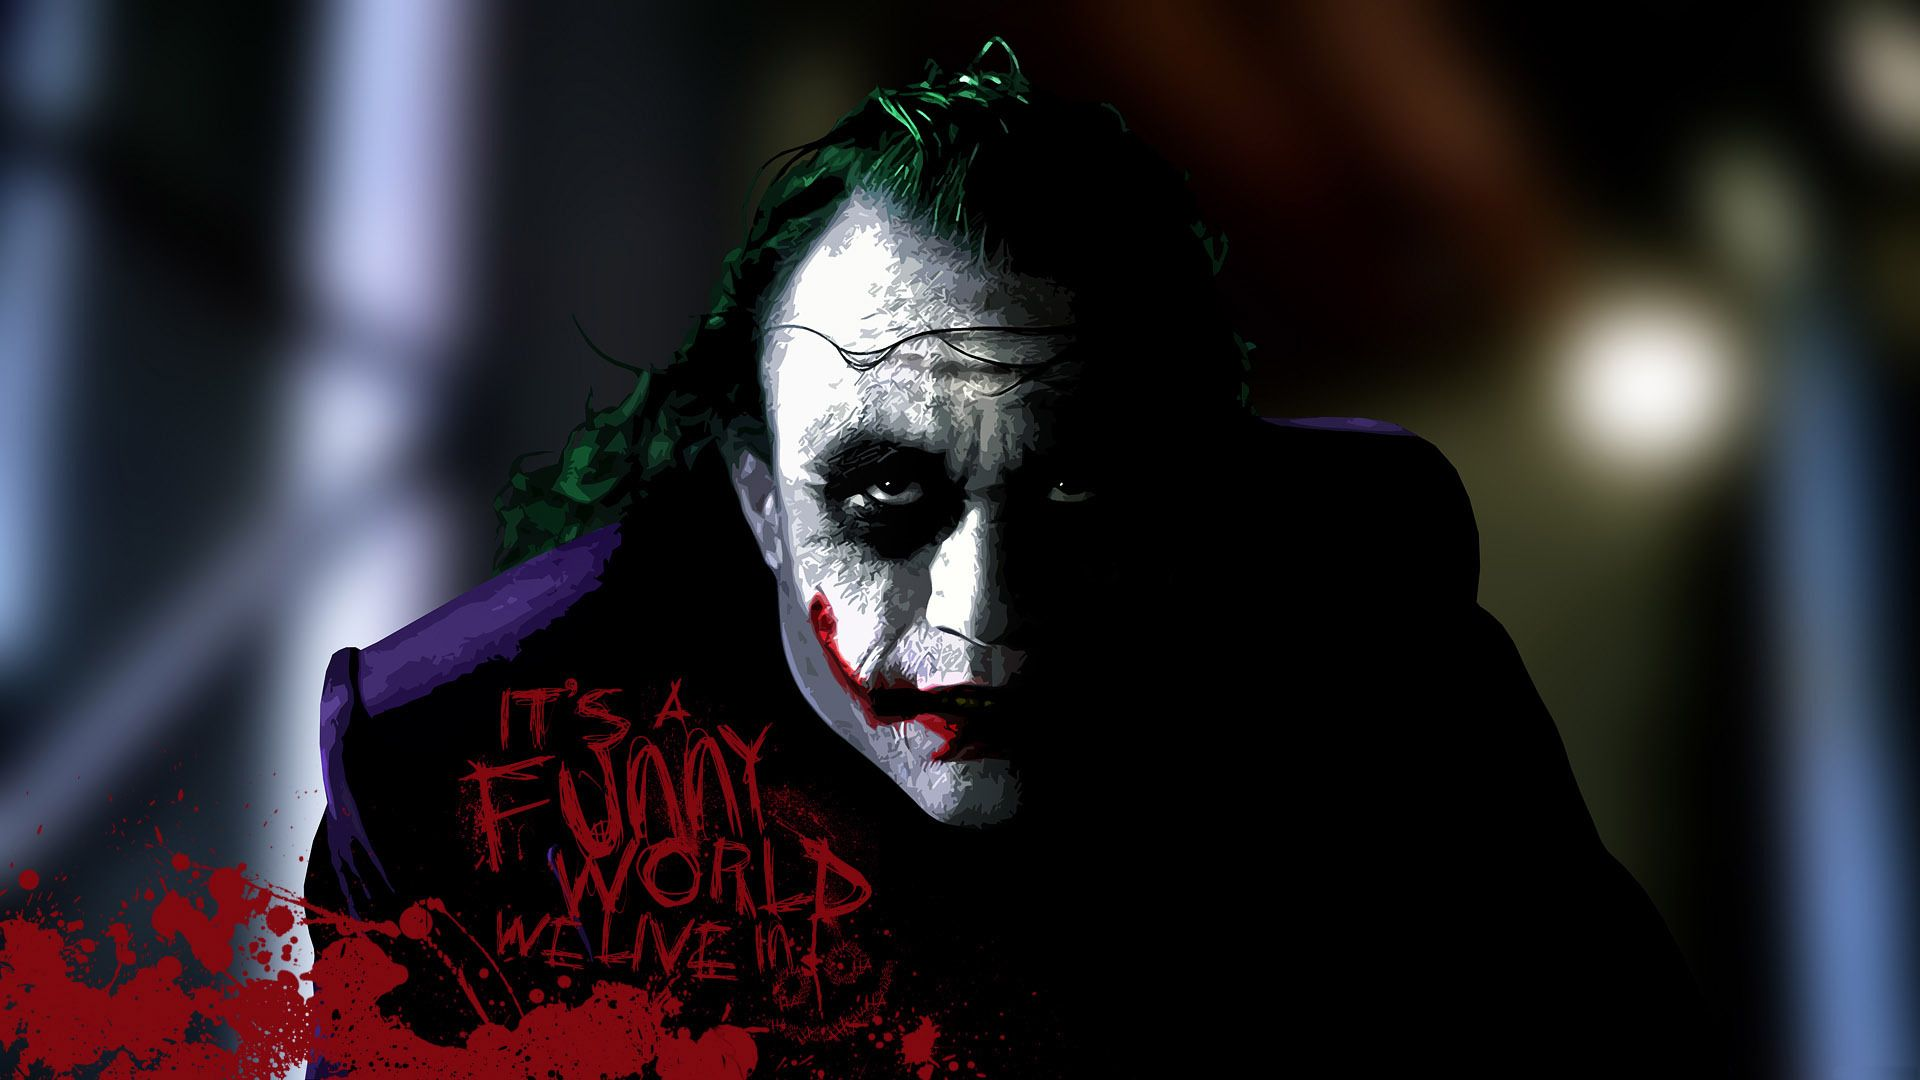 The Joker Wallpapers 1280×720 The Joker Dark Knight